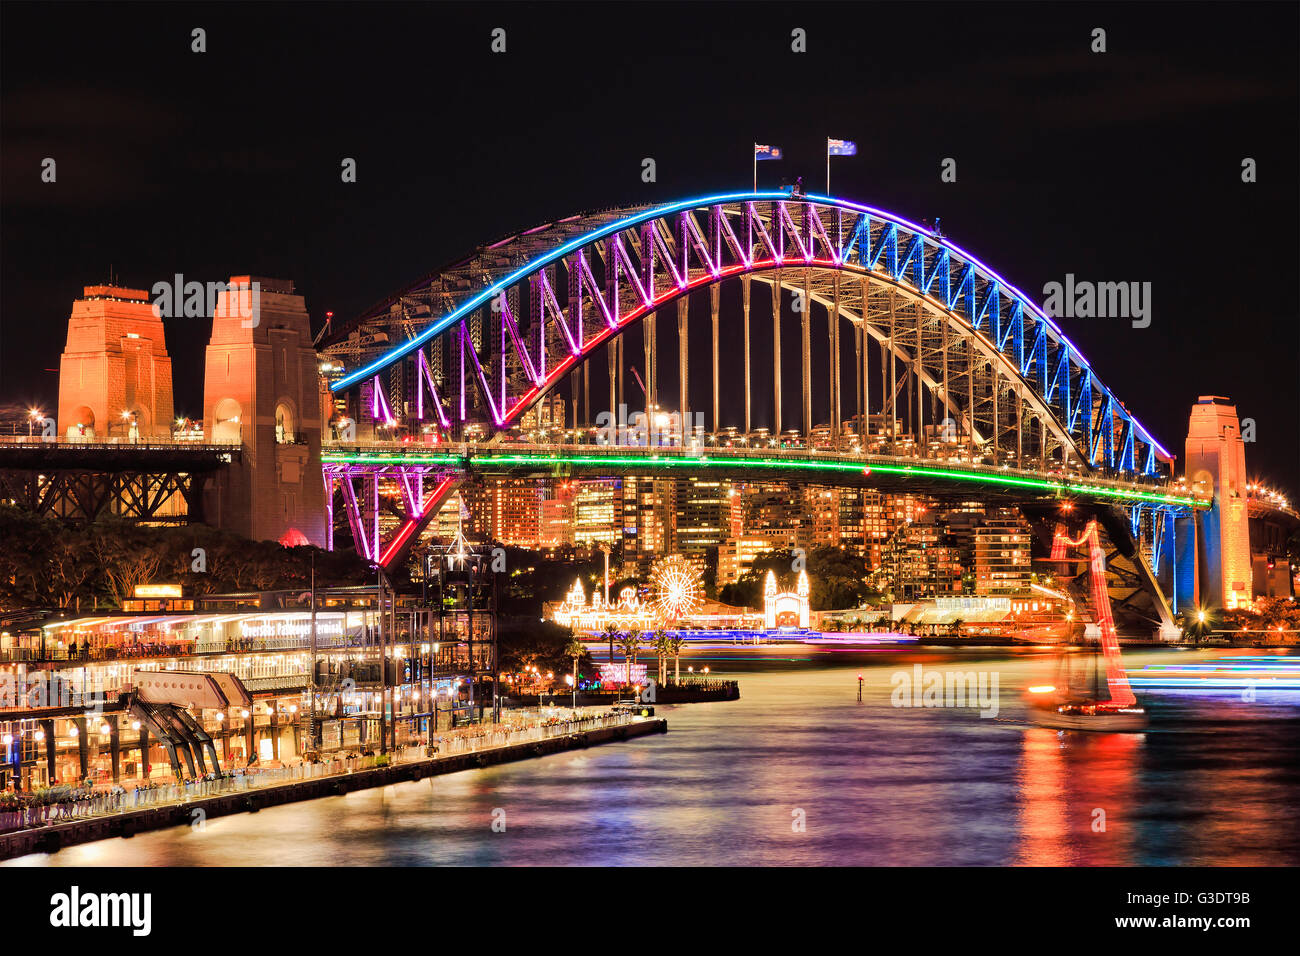 Brightly illuminated arch side of landmark Sydney Harbour Bridge after sunset reflecting lights in blurred still - Stock Image